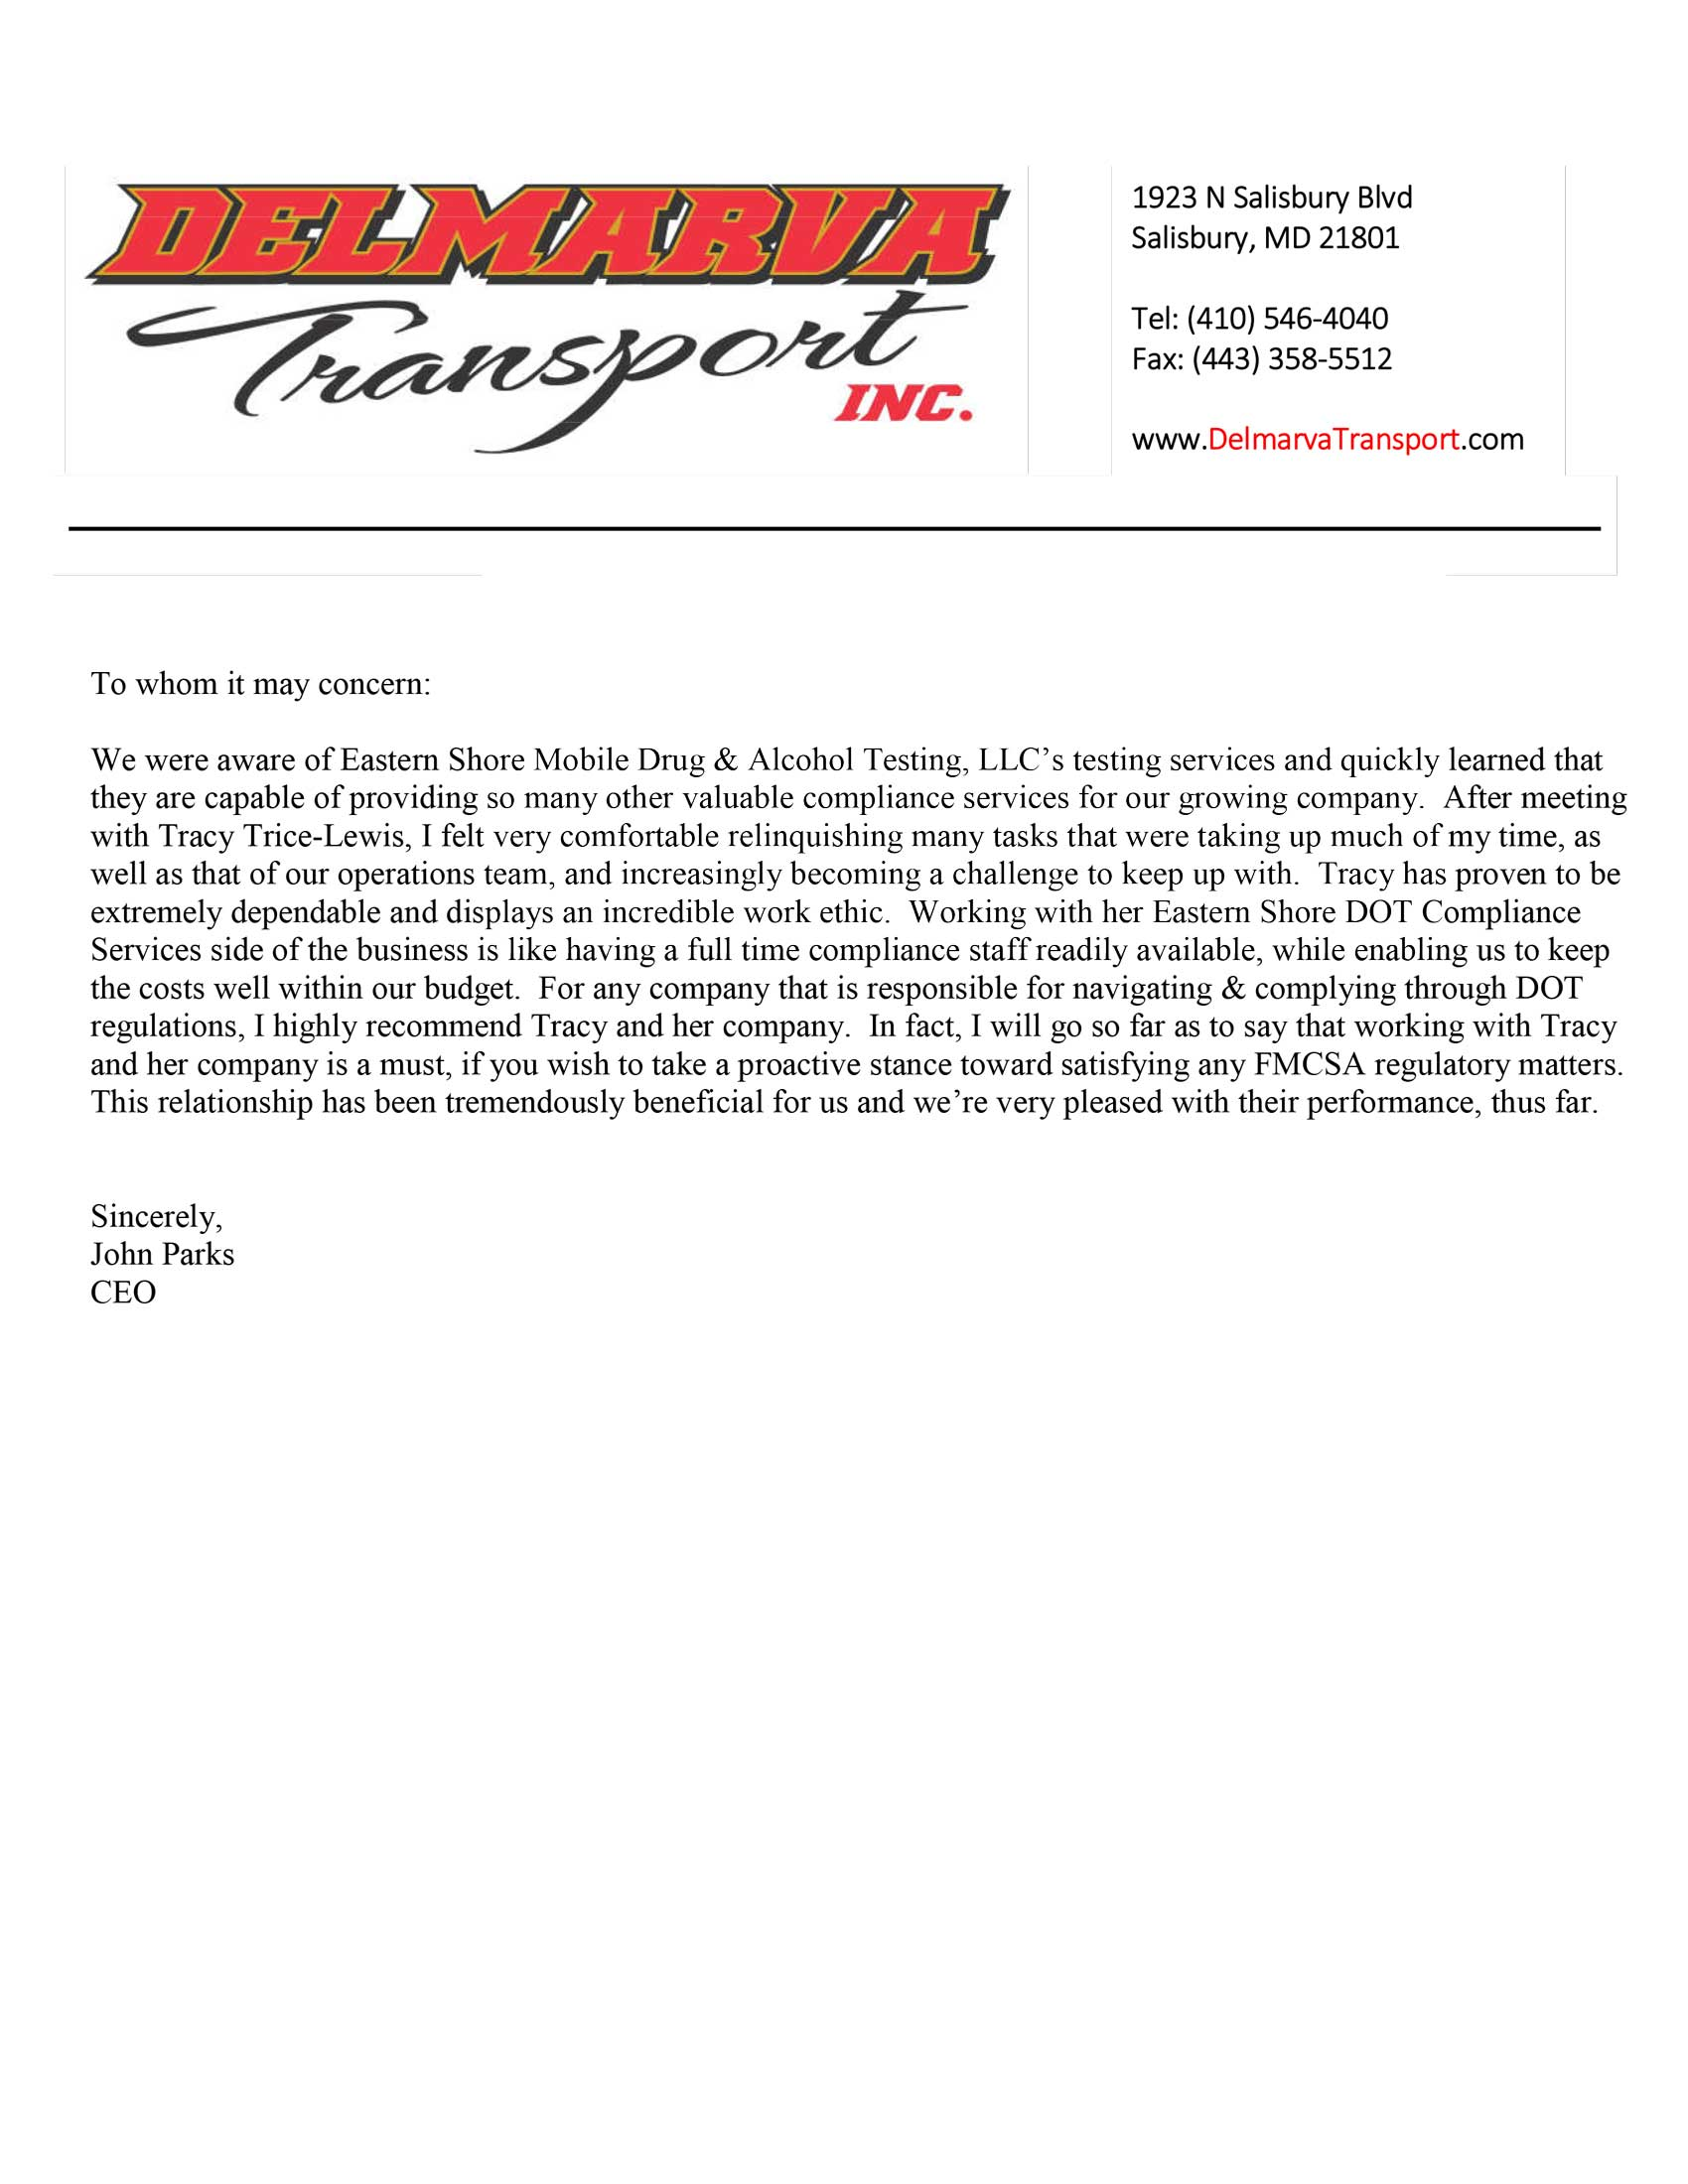 Delmarva Transport letter of recommendation to Eastern shore Mobile